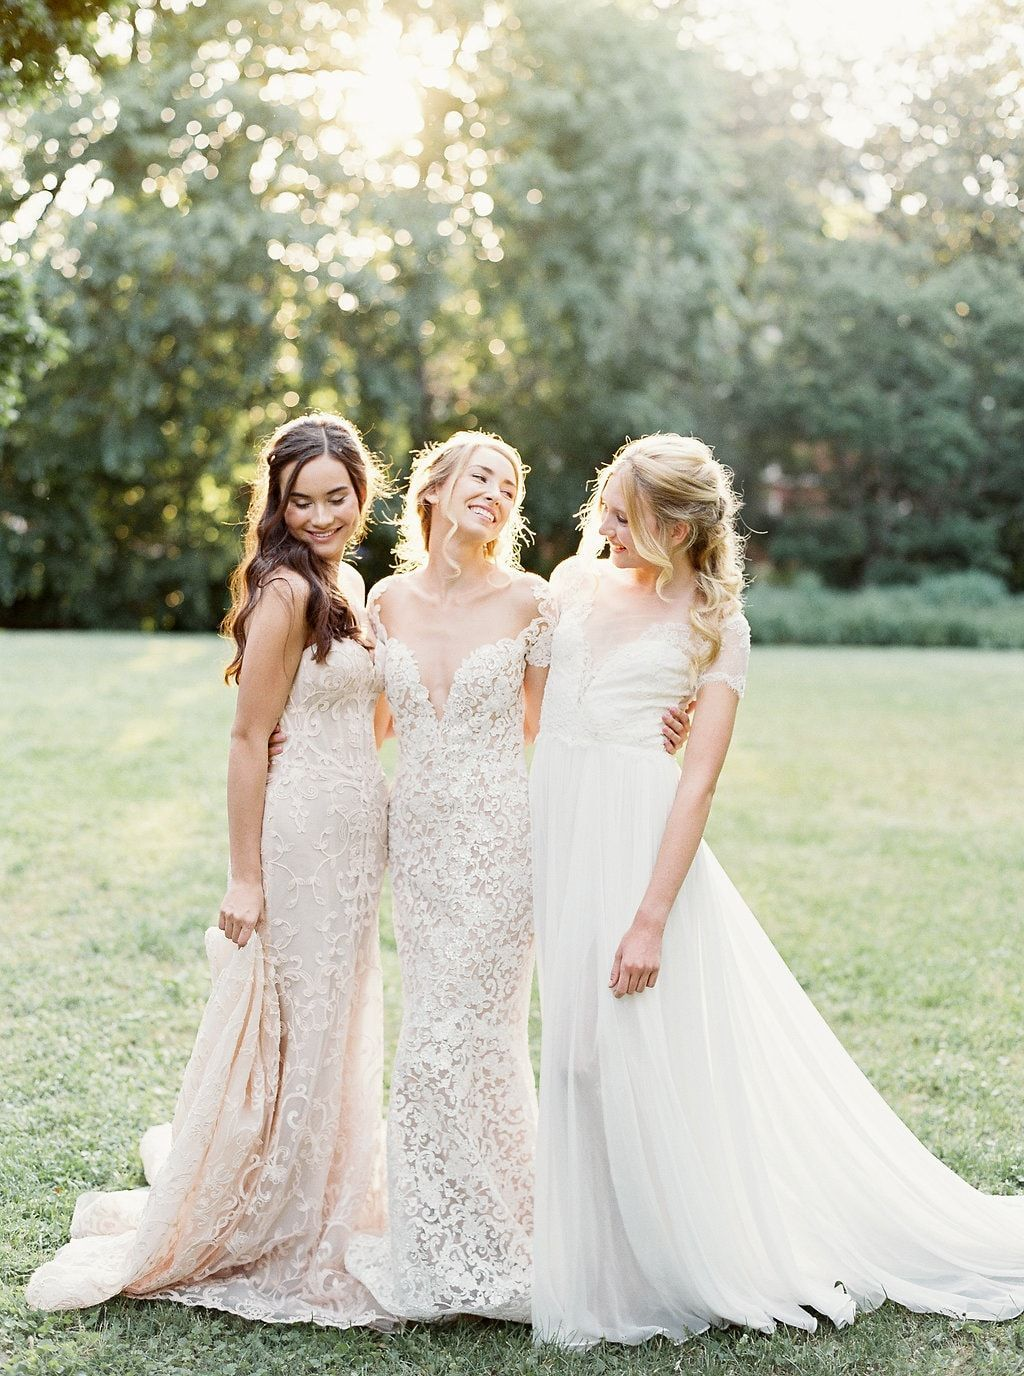 Wedding Dresses 2017 Ideas : Incredible wedding dress fashion trends for once wed